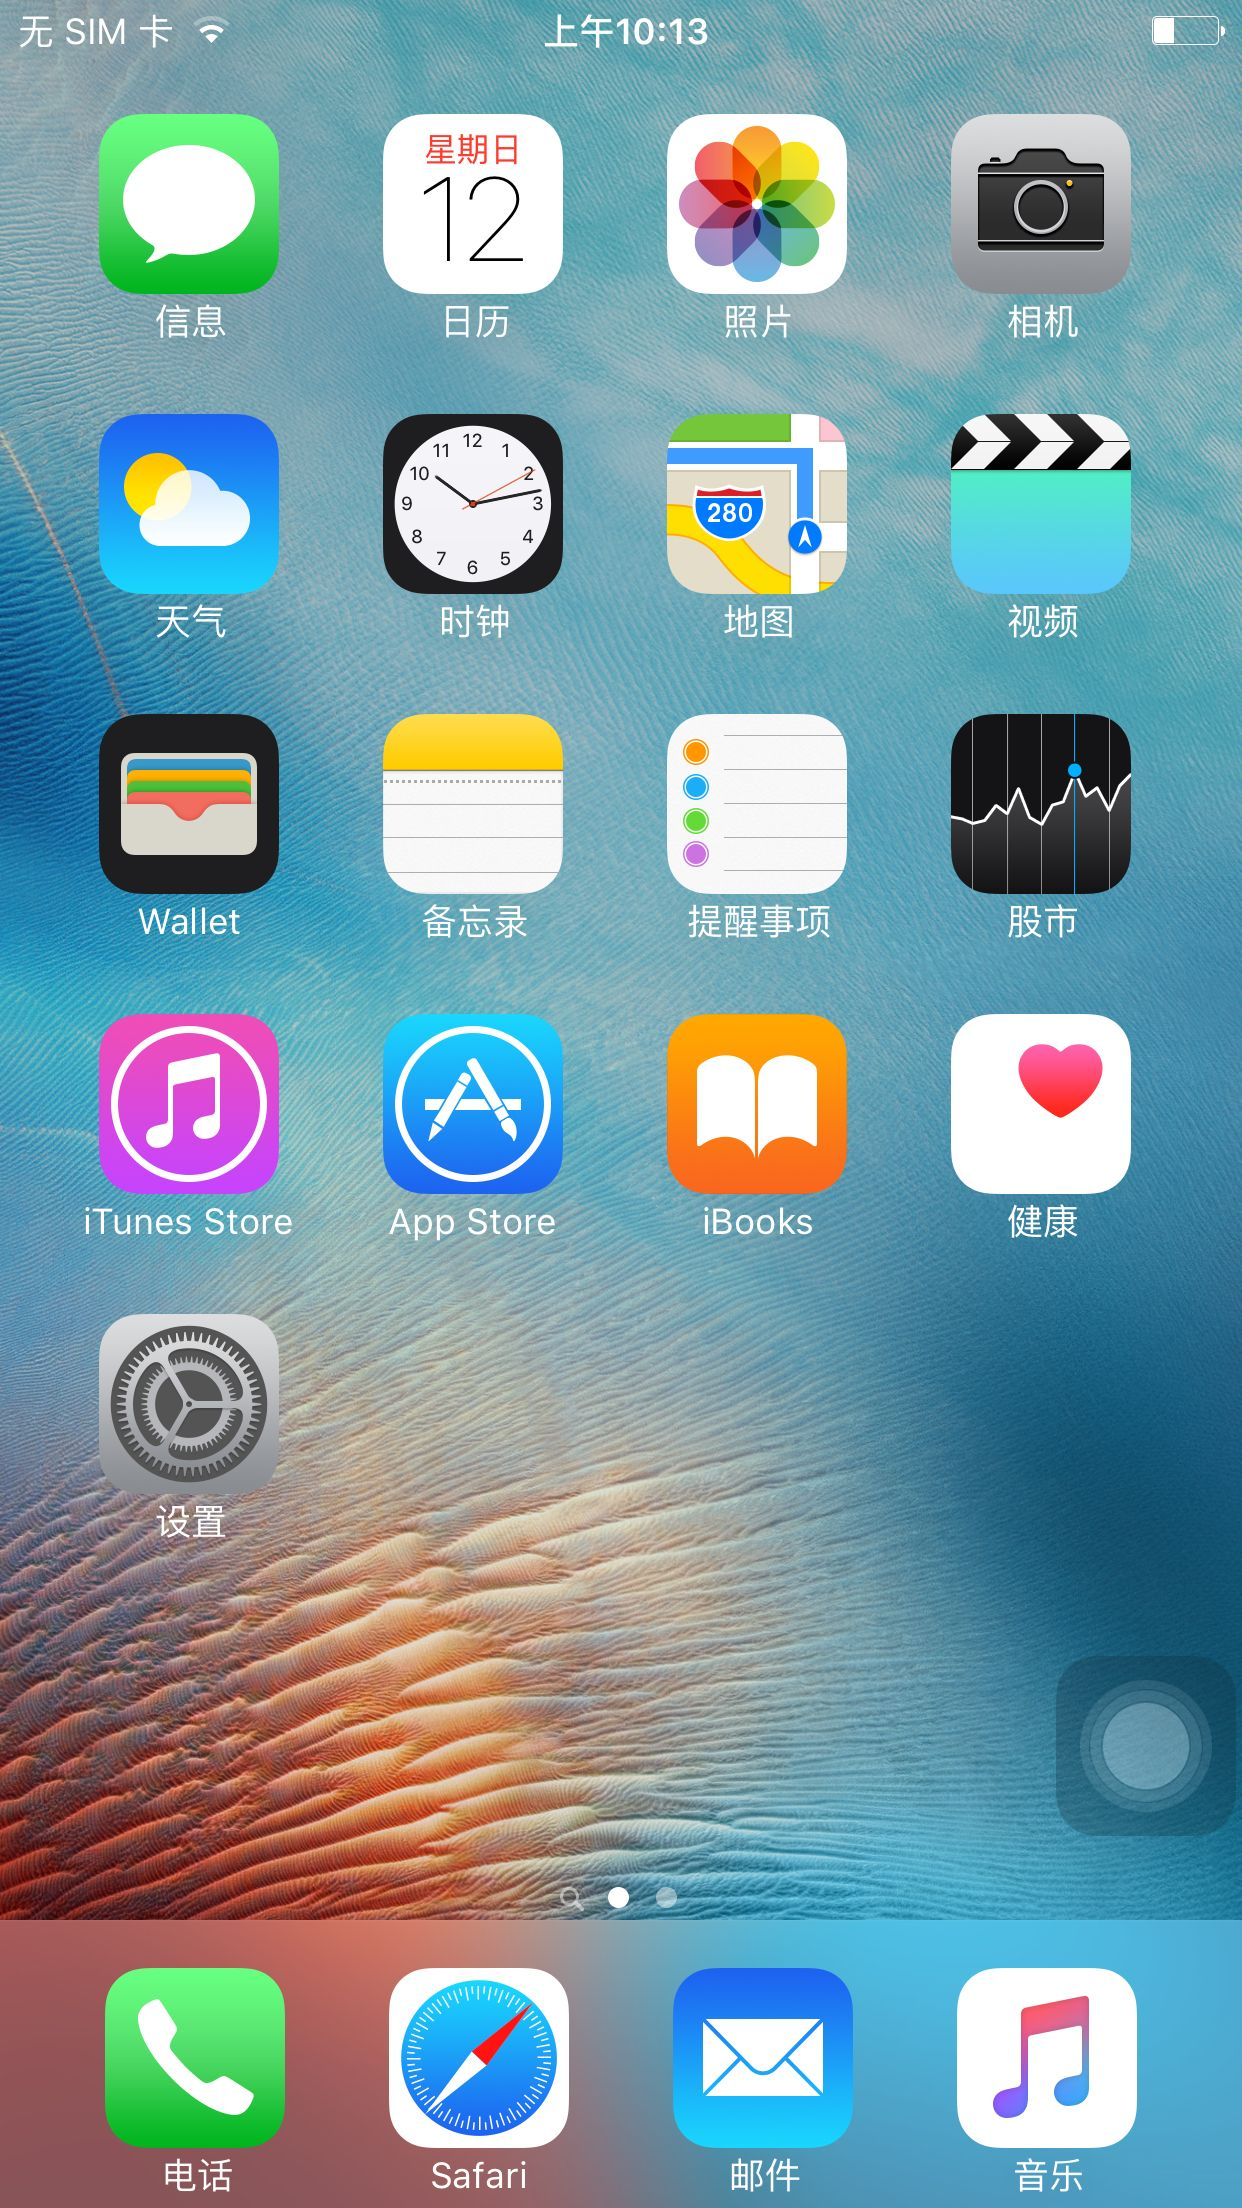 Pin by mr zhang on Gg Iphone, Ios, App store